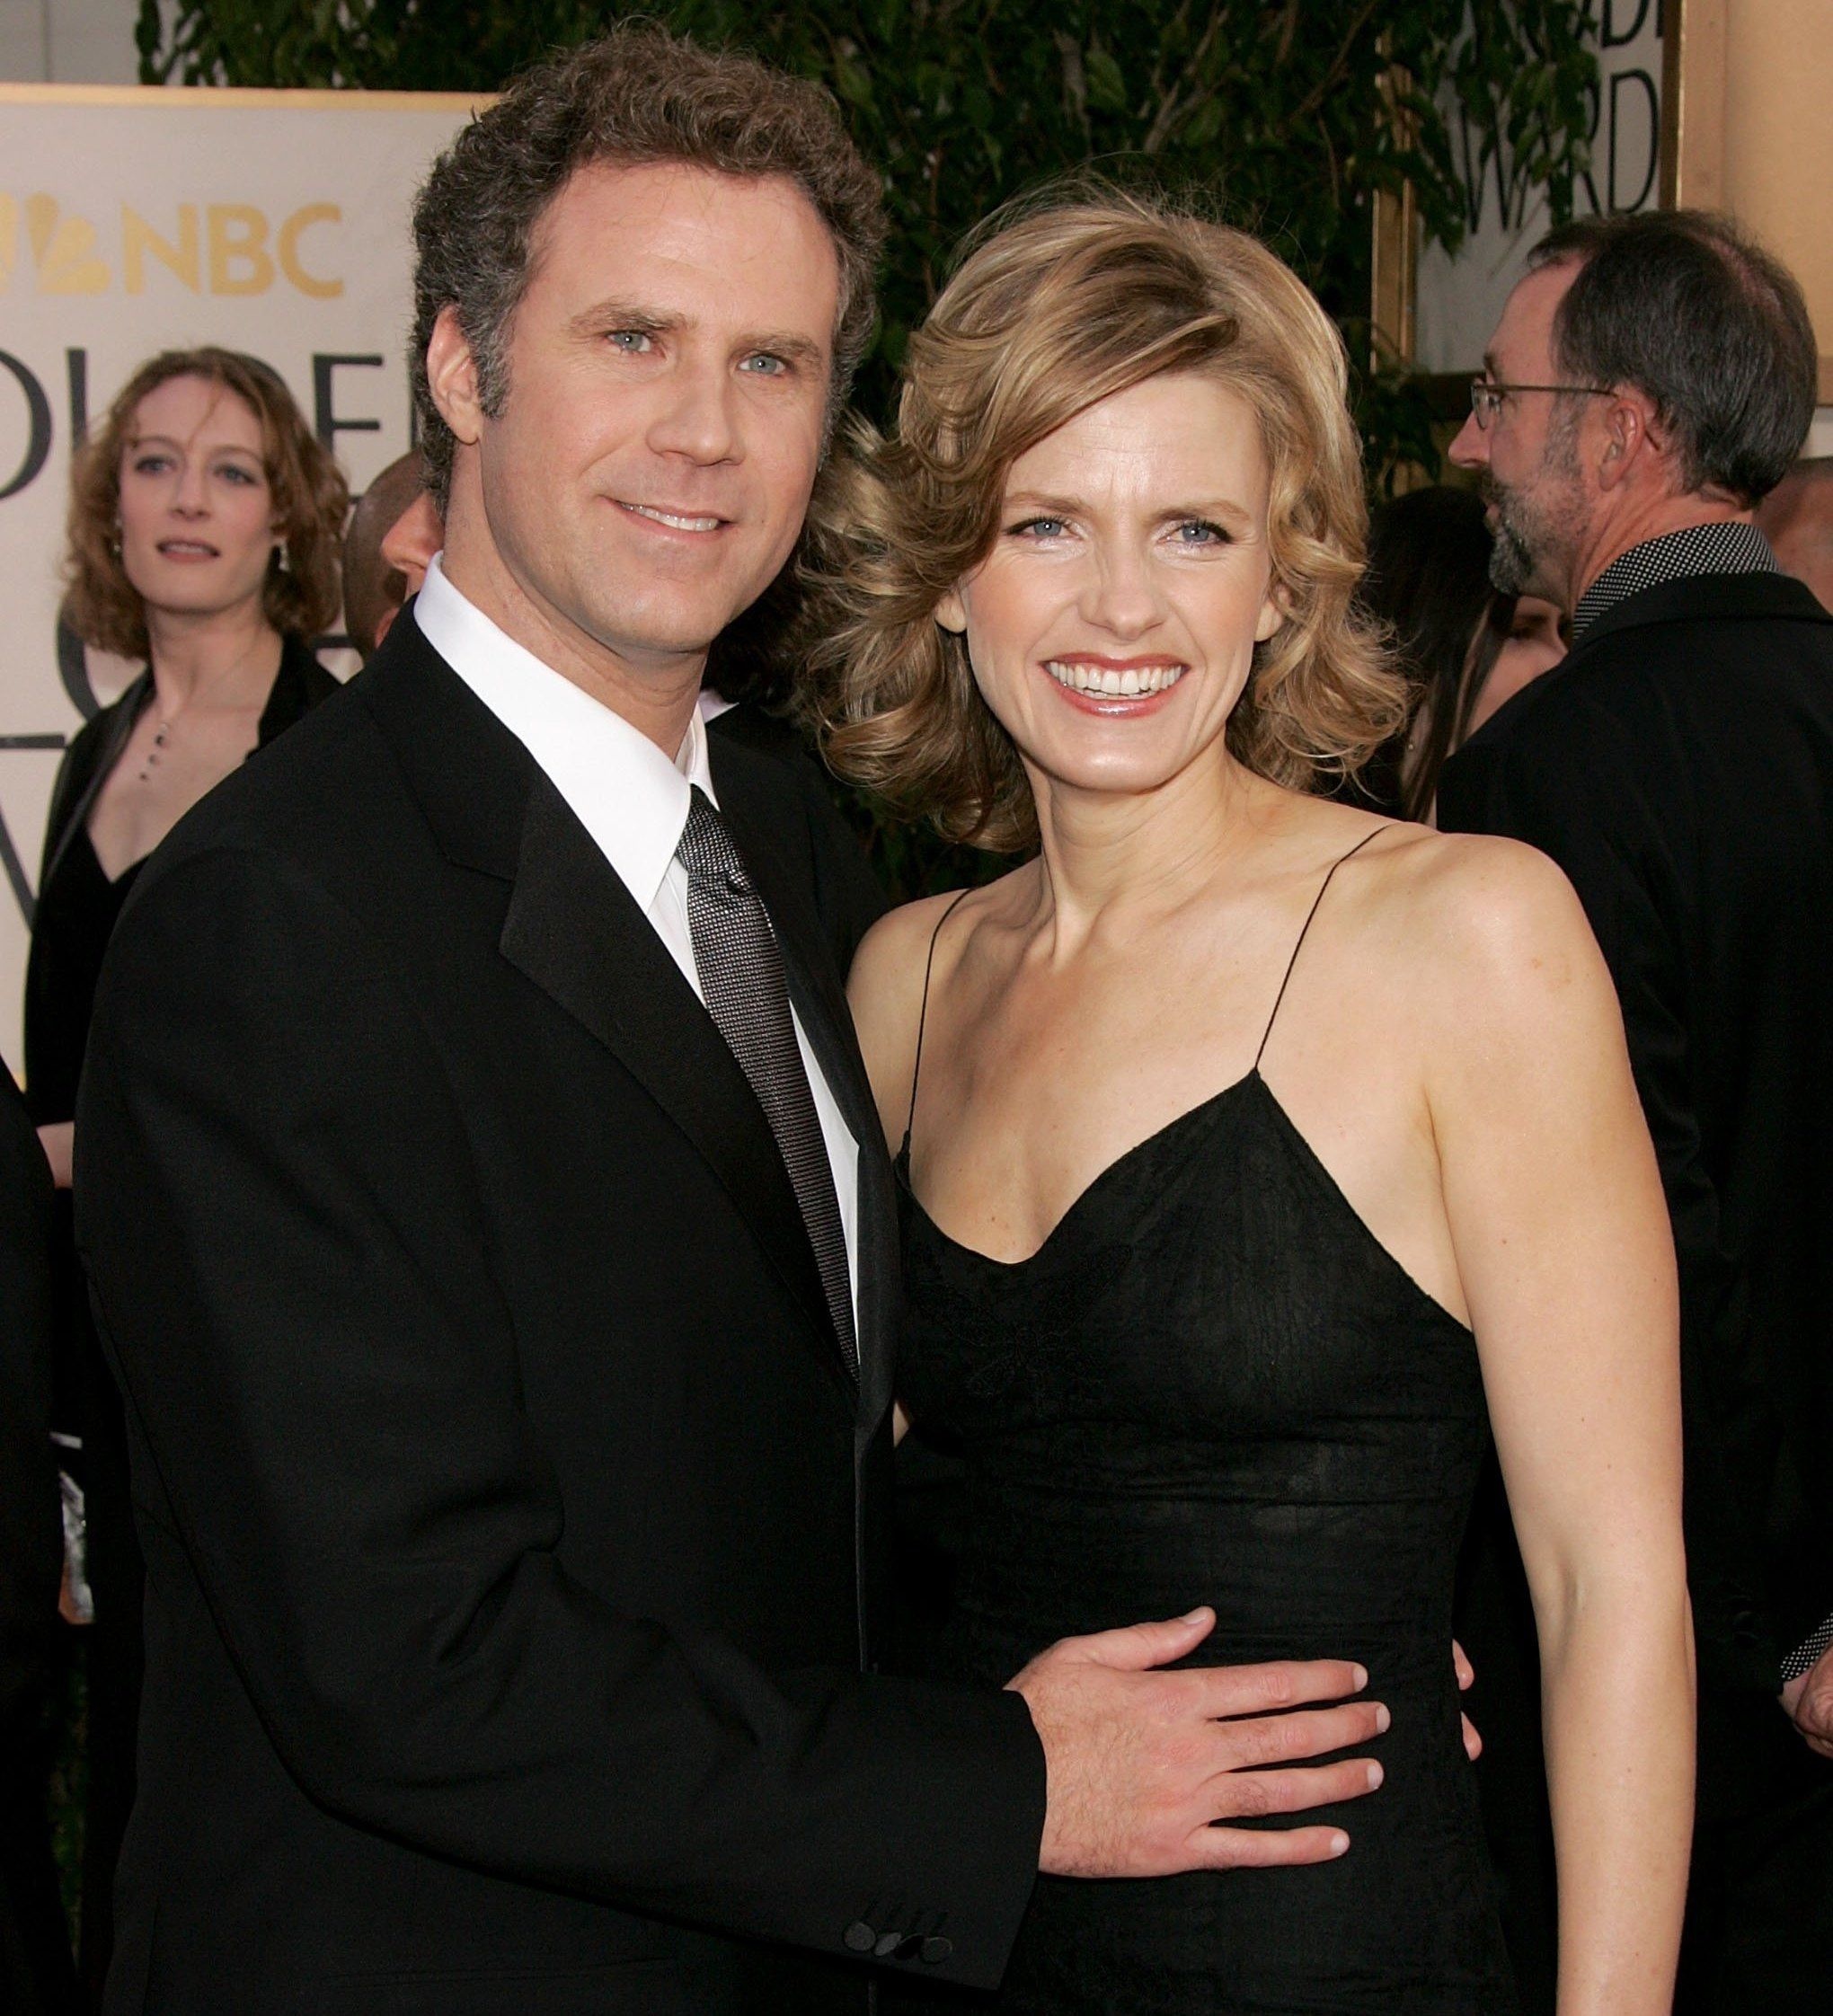 Will Ferrell and wife Viveca Paulin at the 63rd Golden Globe Awards, 2006